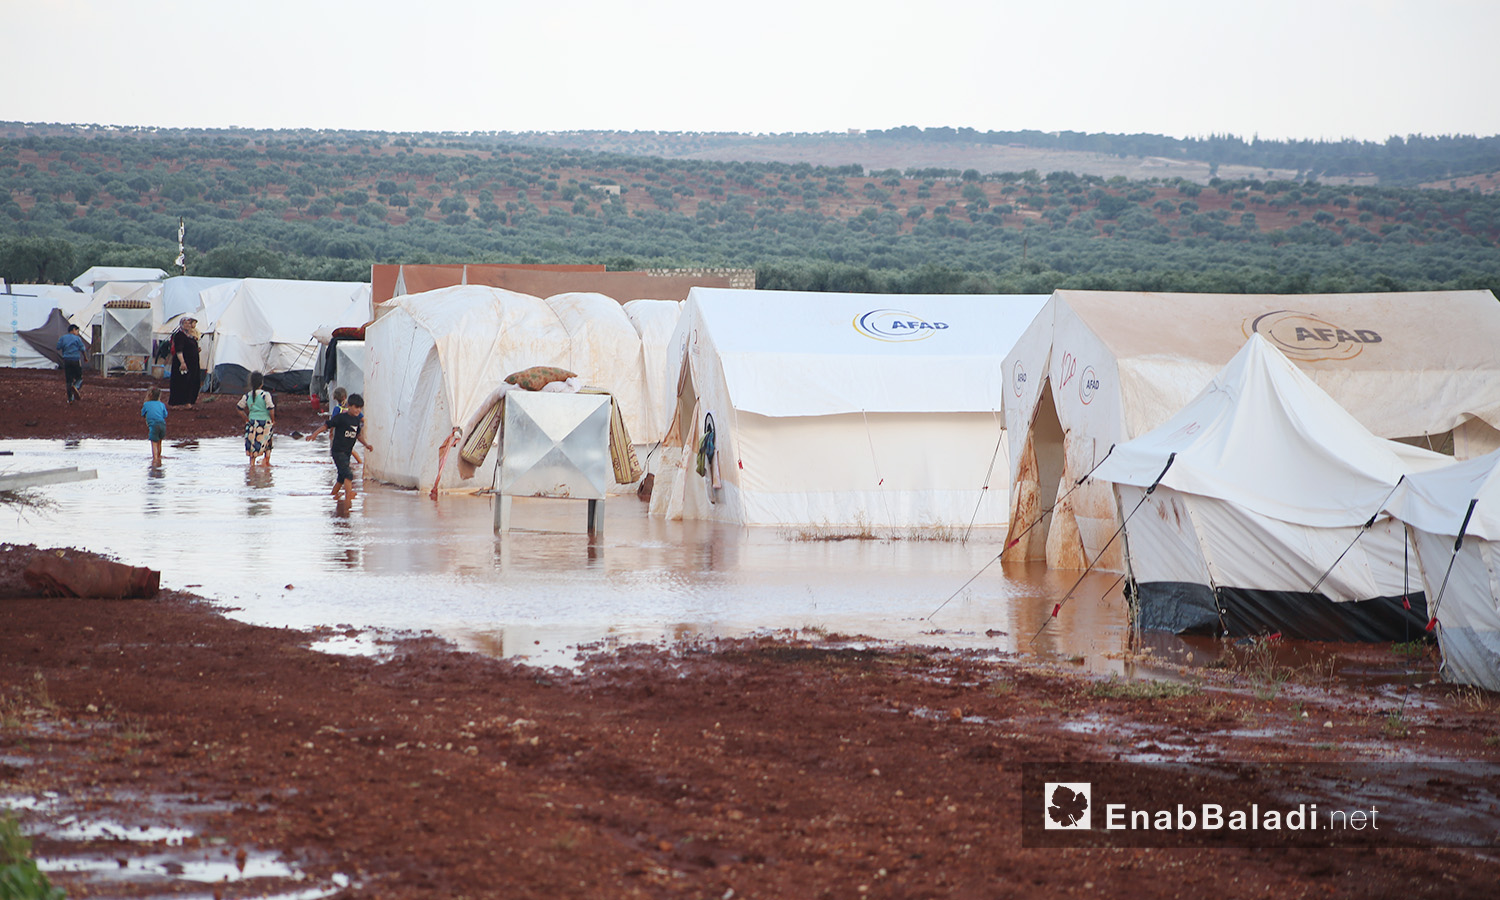 A rainstorm hits northern Syria camps in Kafr Buni in the northern countryside of Idlib - 19 June 2020 (Enab Baladi / Youssef Ghribi)